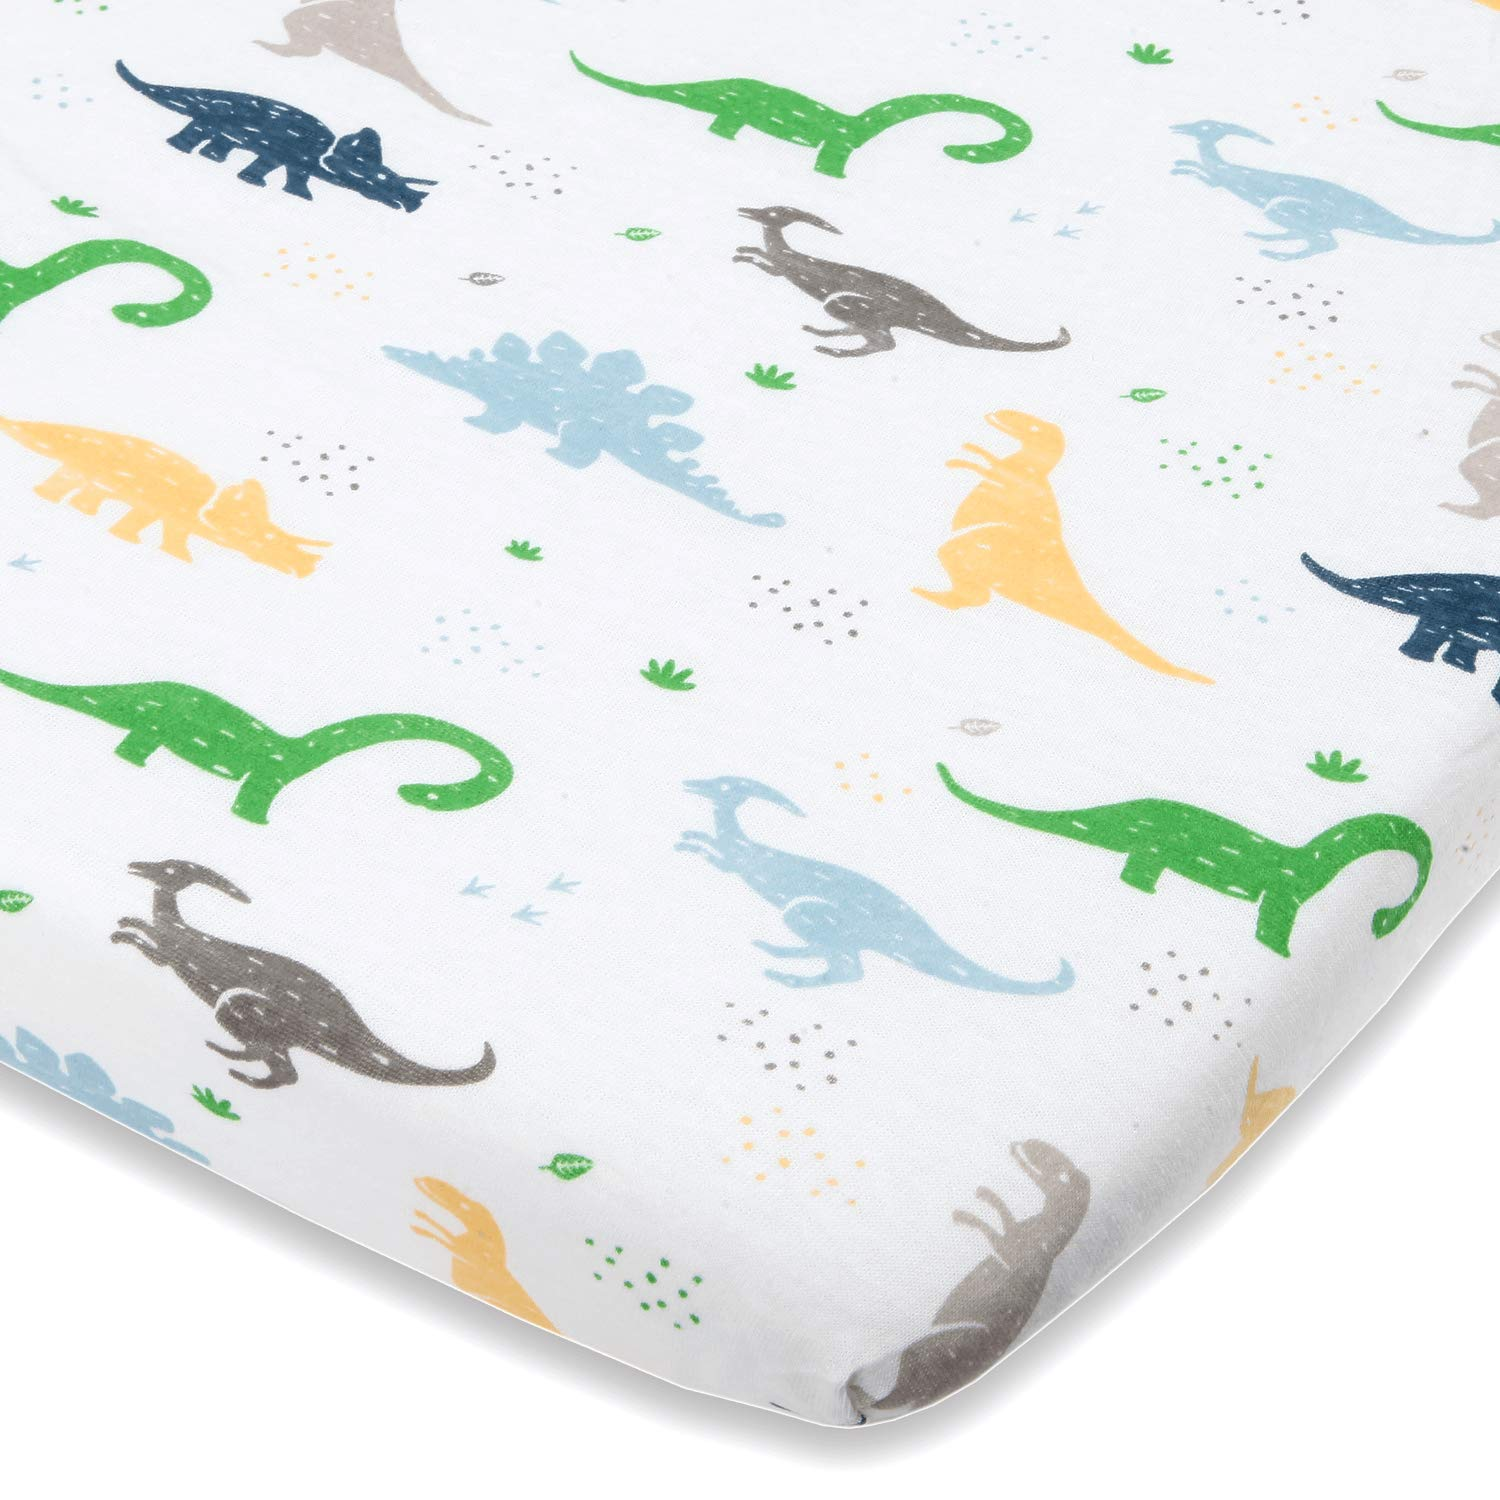 Dinosaur Bassinet Sheets Compatible With Chicco Lullago, Halo Bassinet, Arms Reach Versatile Co Sleeper and Other Oval, Rectangle, Hourglass Bassinet pads - Pure Natural Cotton - Ultra Soft by Cuddly Cubs